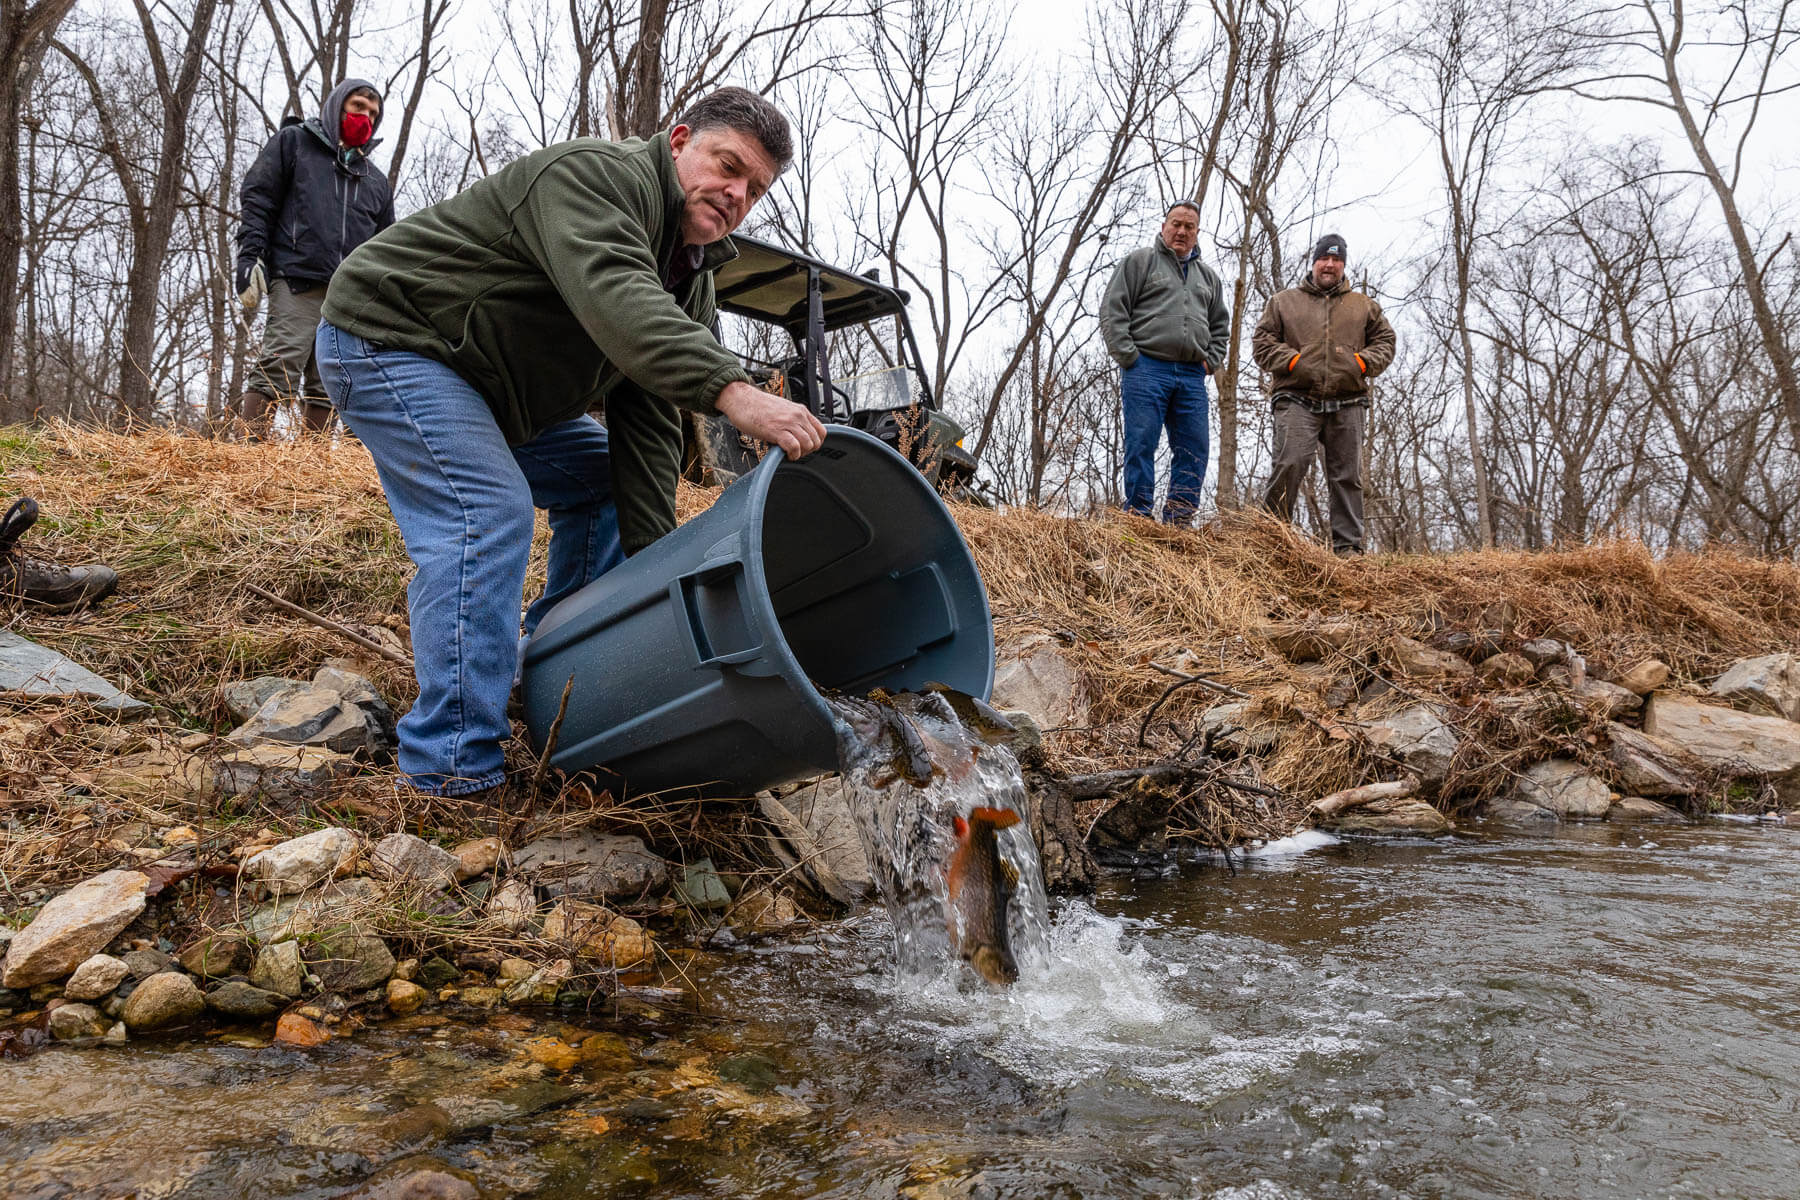 Trout released in restored Piney Run